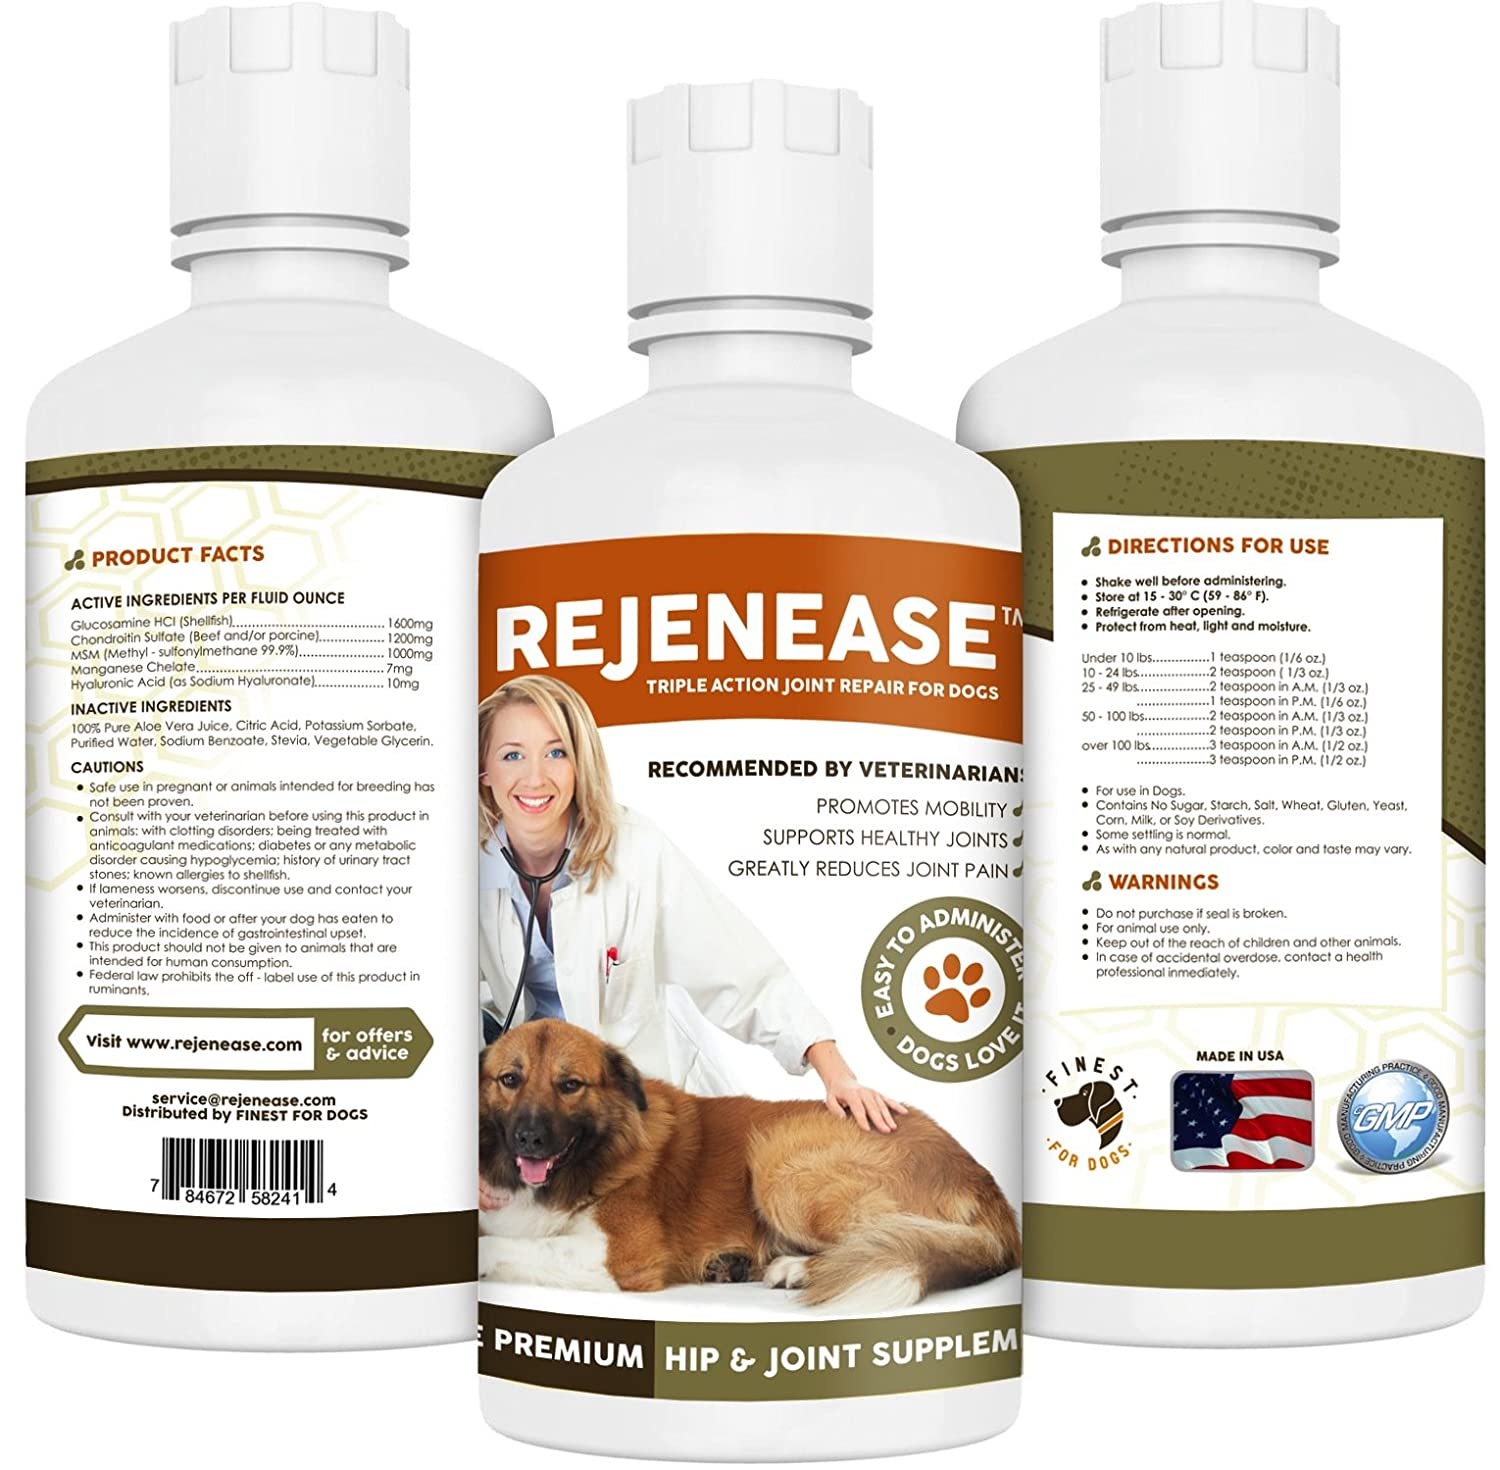 Glucosamine for Dogs - Hip and Joint Supplement for Maximum Mobility, Pain Relief and Joint Health for Dogs. All Natural Liquid Glucosamine, Chondroitin & MSM. Large 32 Oz Bottle. Made in USA. Results in 30 Days or Your Money Back. glucosamine chondroitin msm 300 таб